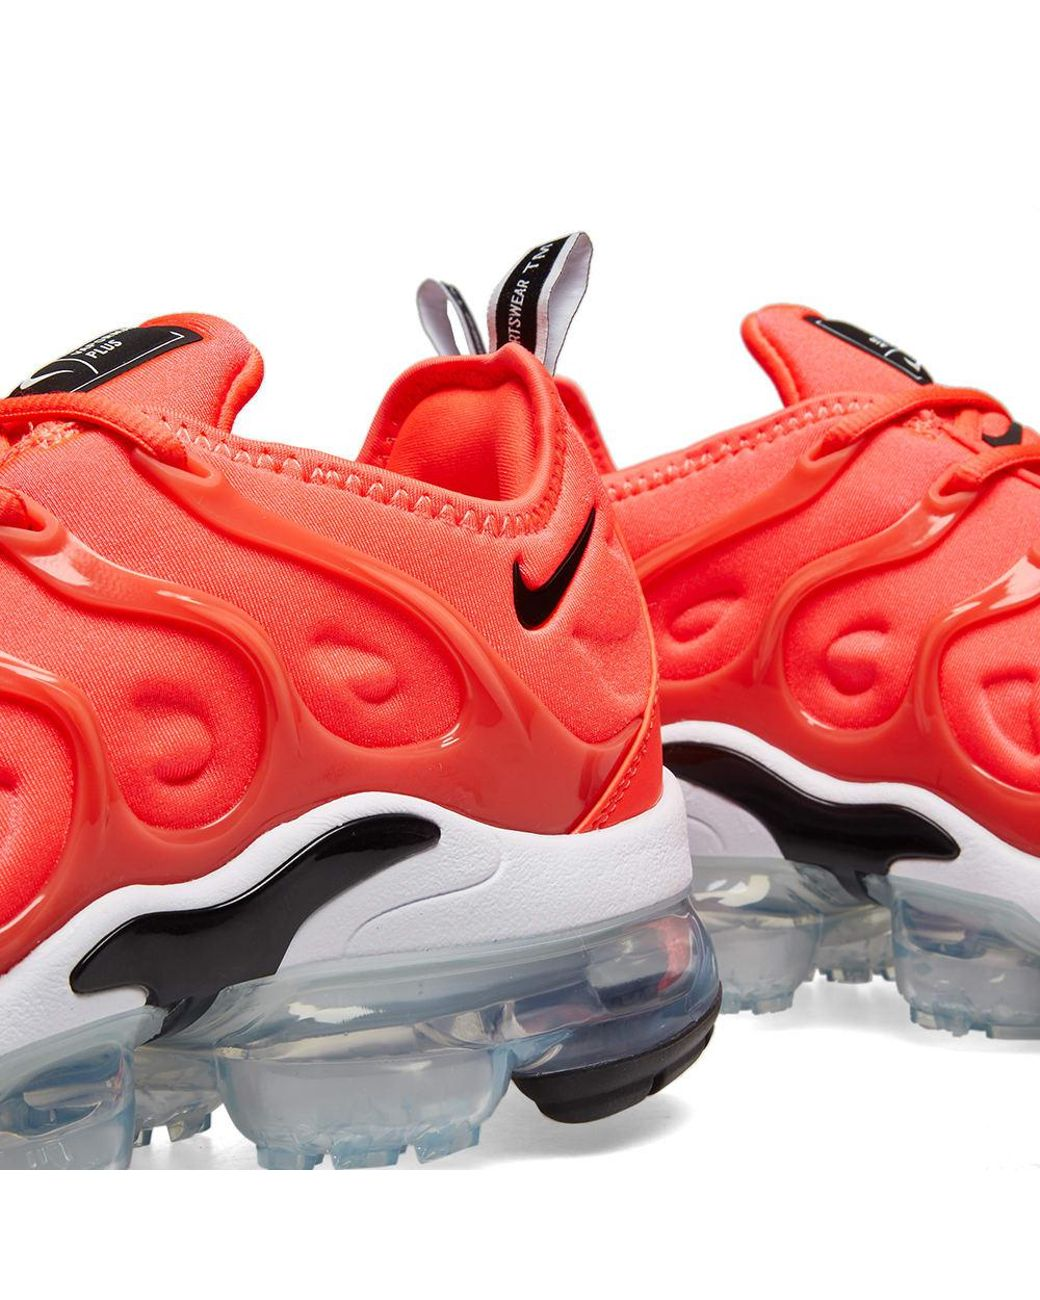 faa2b983cdc Nike Air Vapormax Plus in Red for Men - Save 40% - Lyst